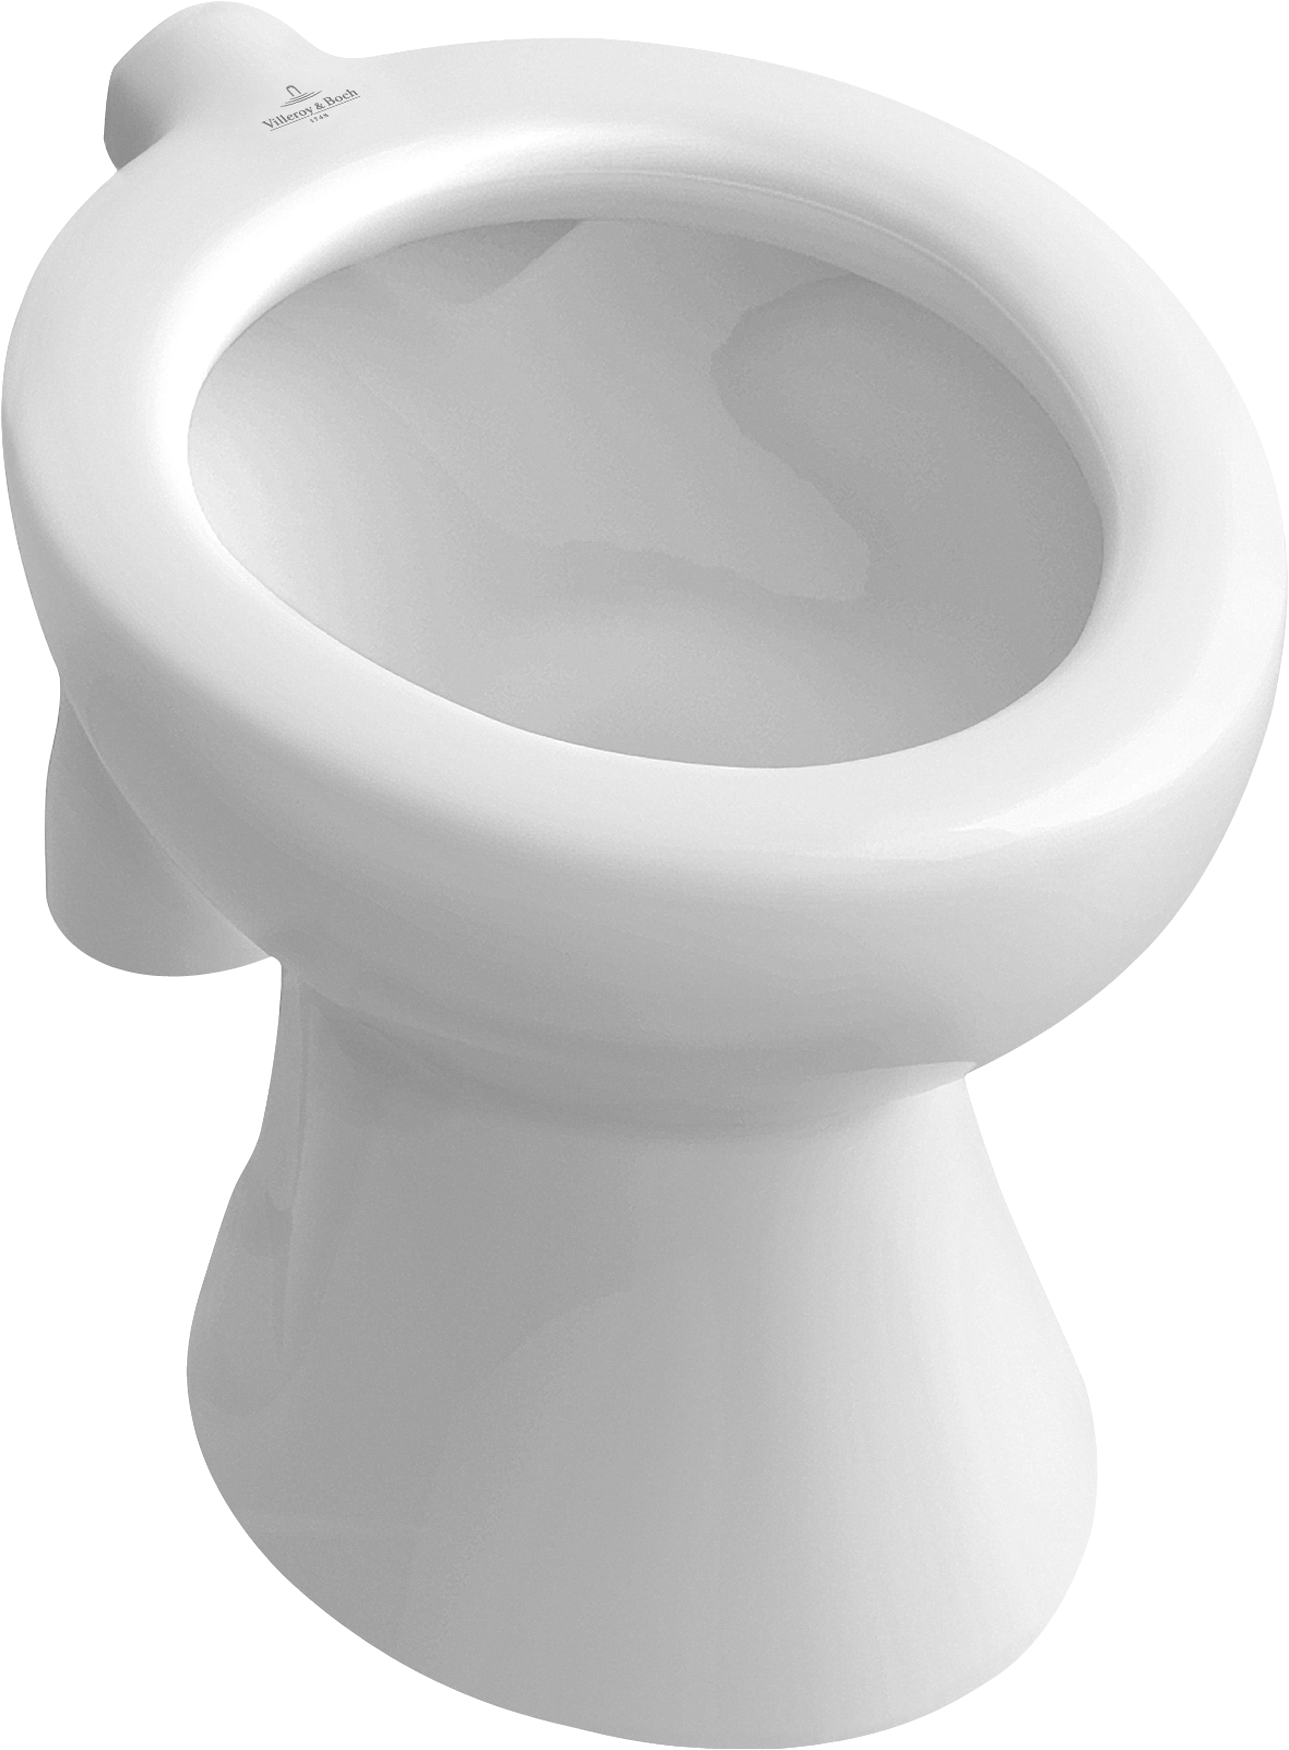 toilet png images are download crazypngm crazy png images download #29283